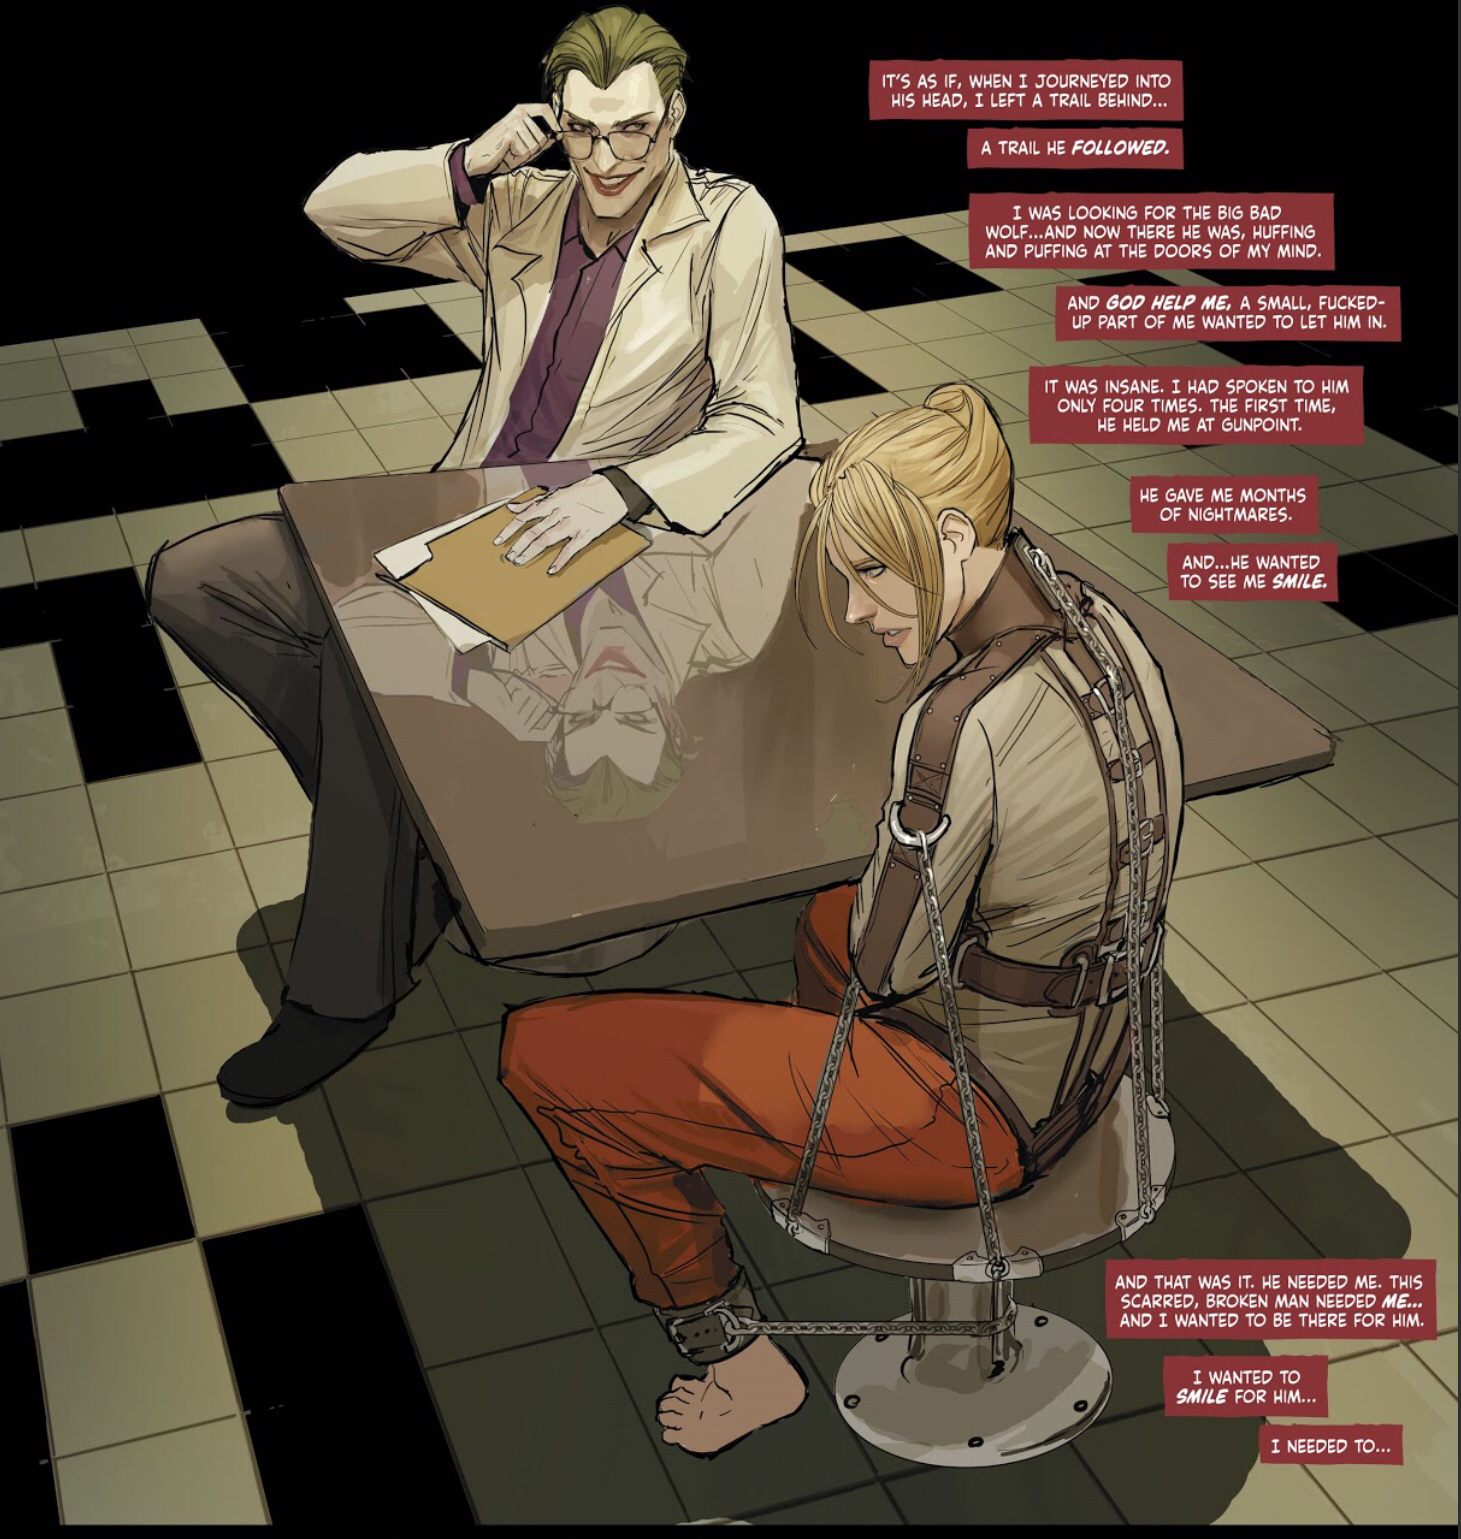 Roles Reversed in Arkham in Harleen #2.